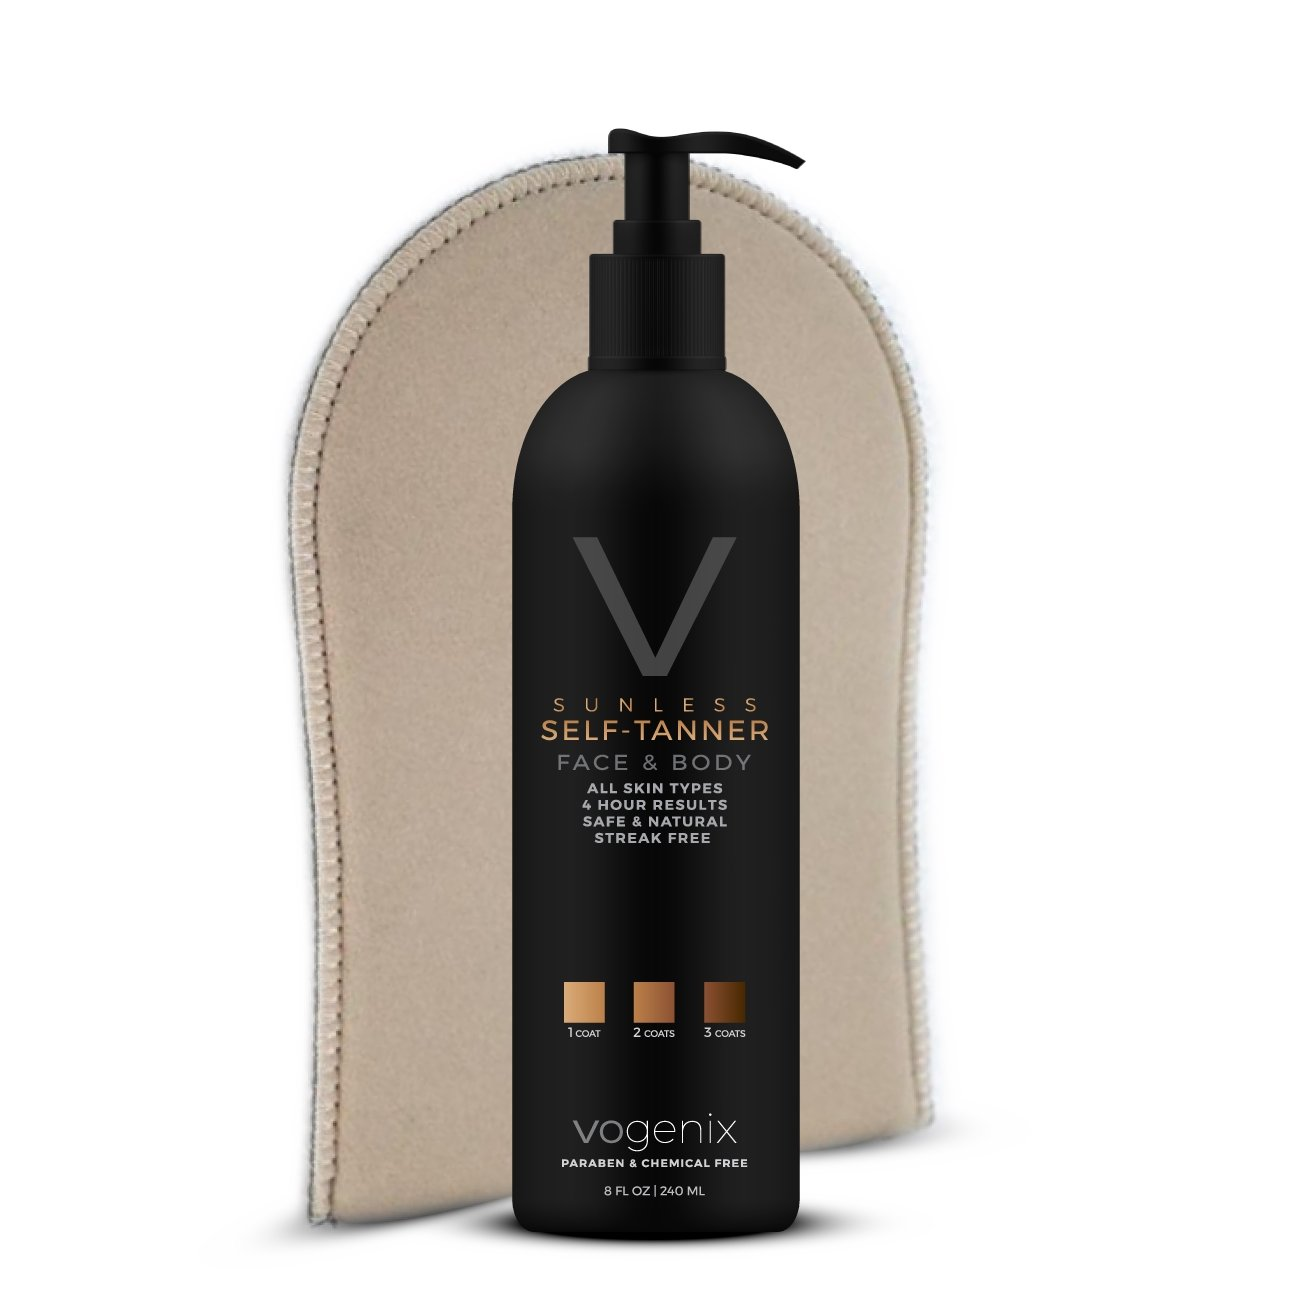 The Best Self-Tanner by Vogenix - All Natural & Organic - Free Application Mitt